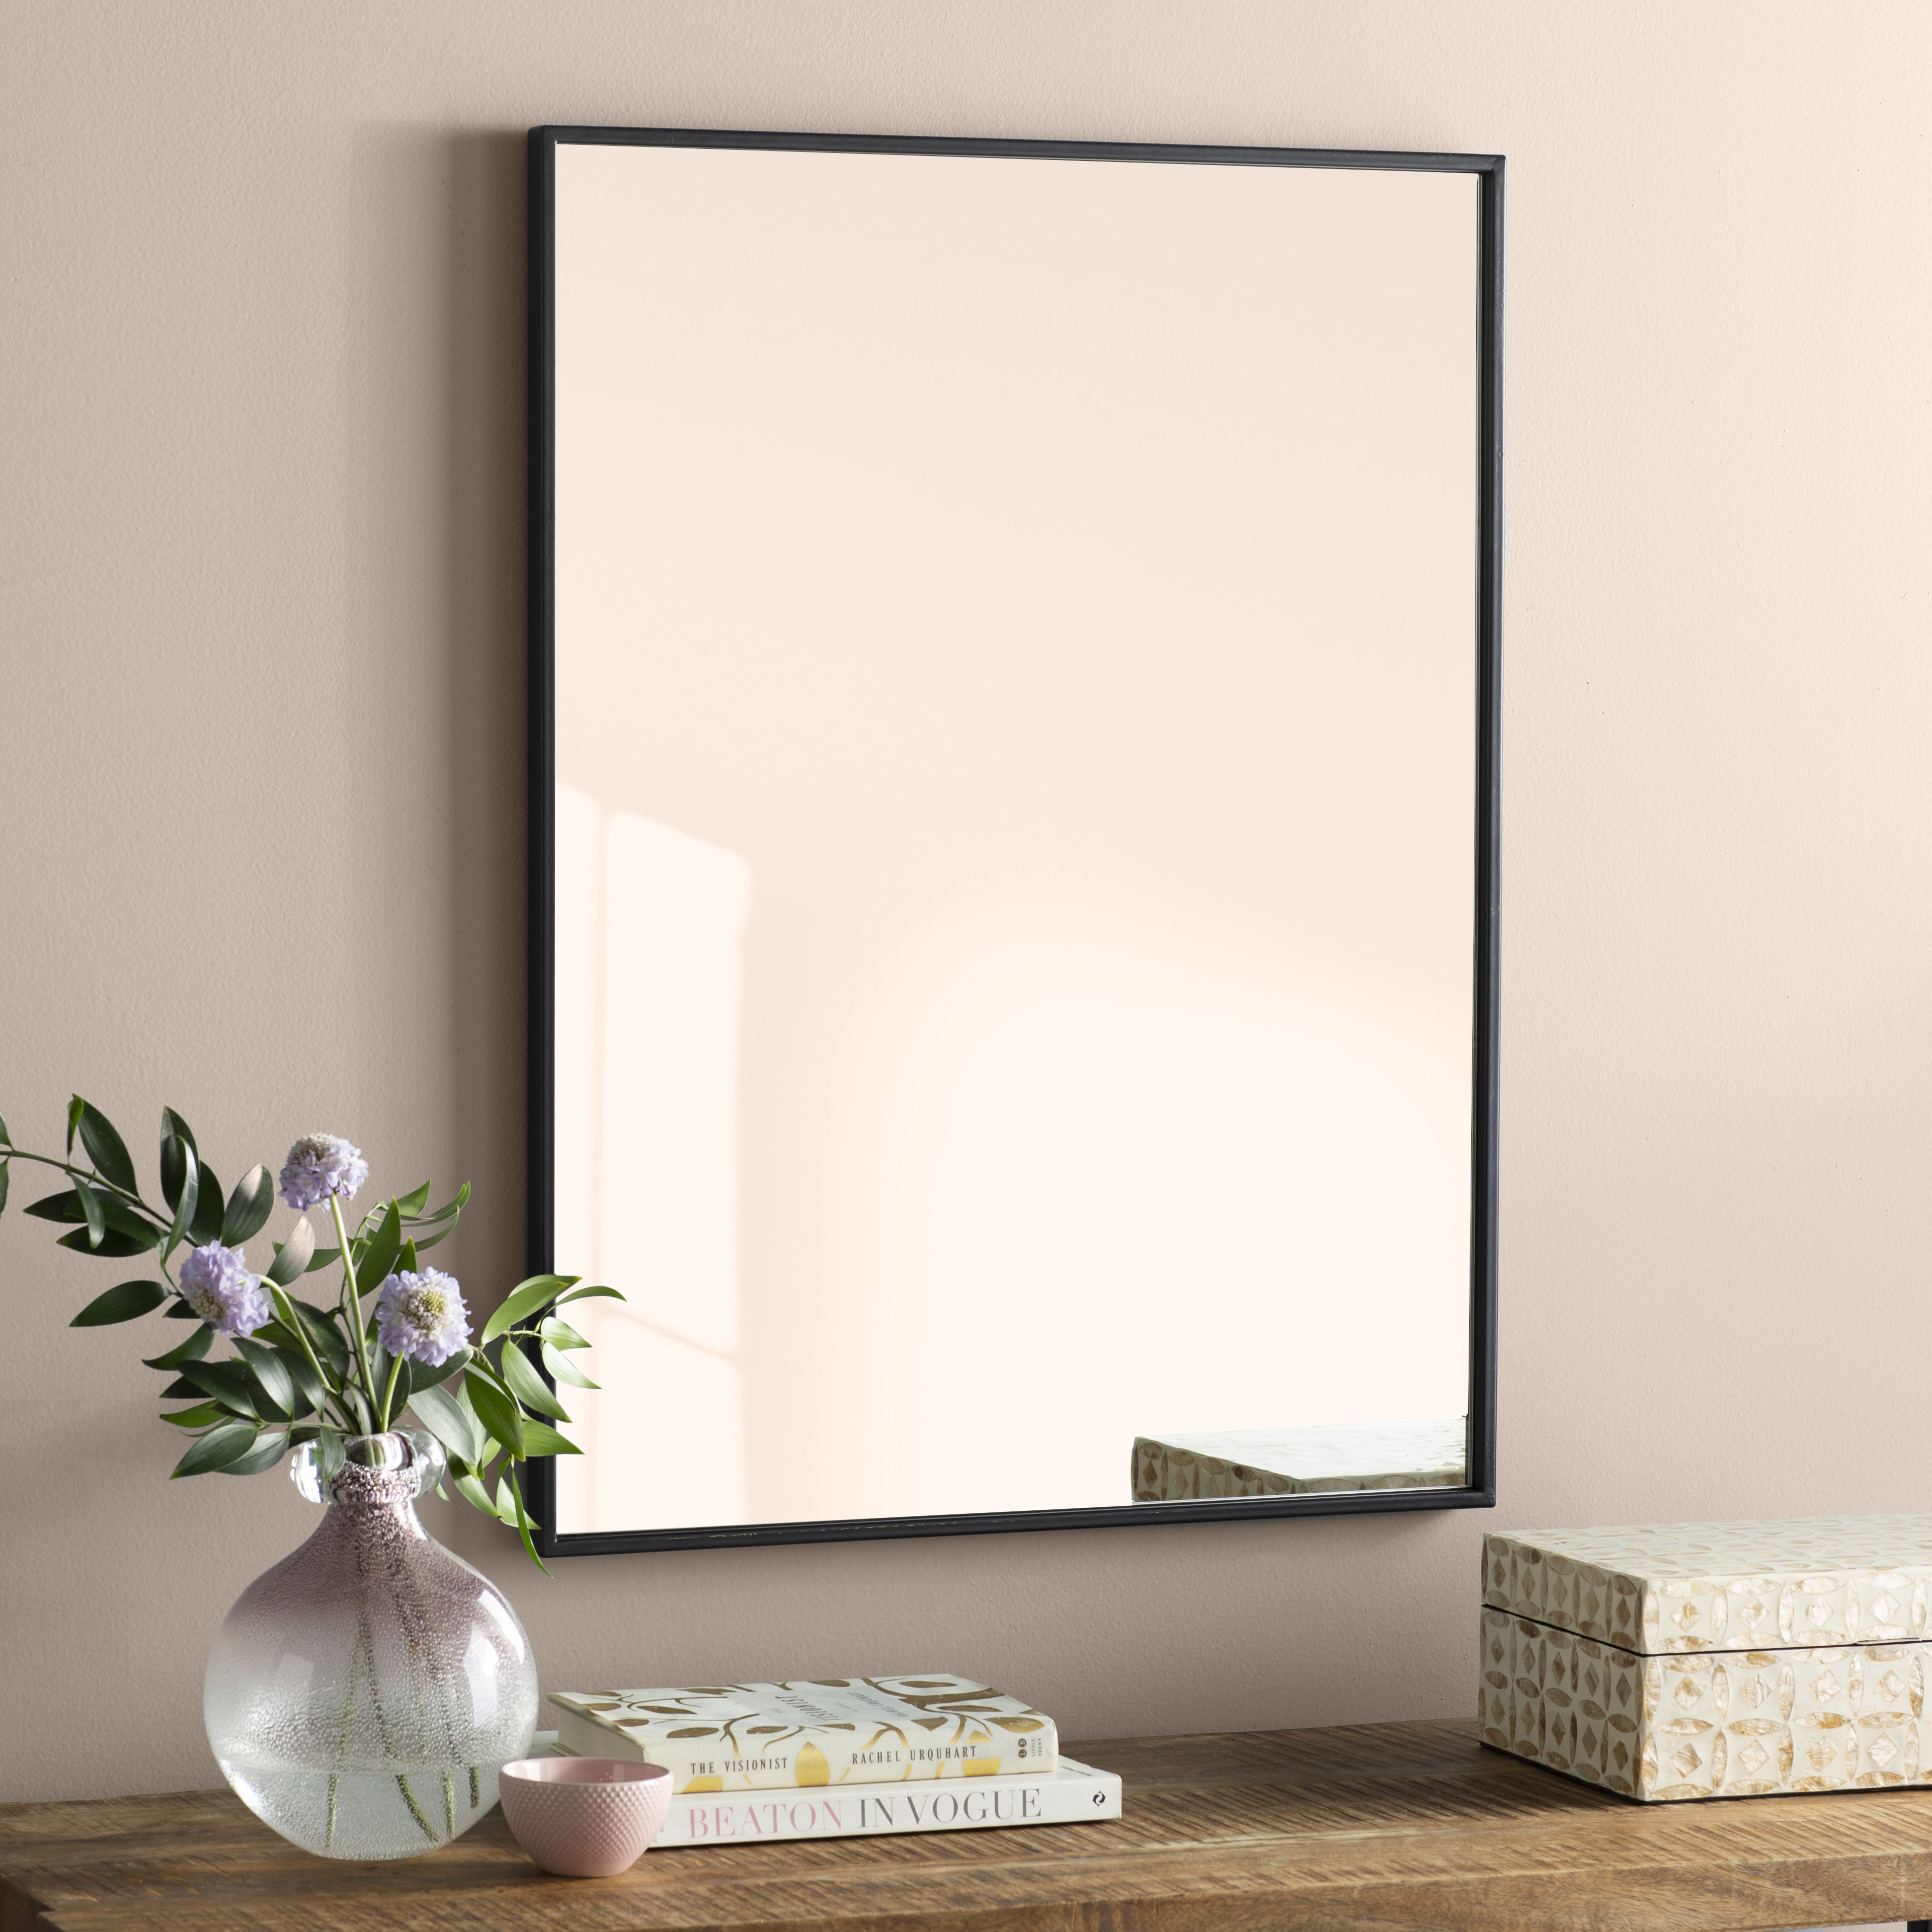 Square Wall & Accent Mirrors | Joss & Main With Regard To 2 Piece Priscilla Square Traditional Beveled Distressed Accent Mirror Sets (View 4 of 20)